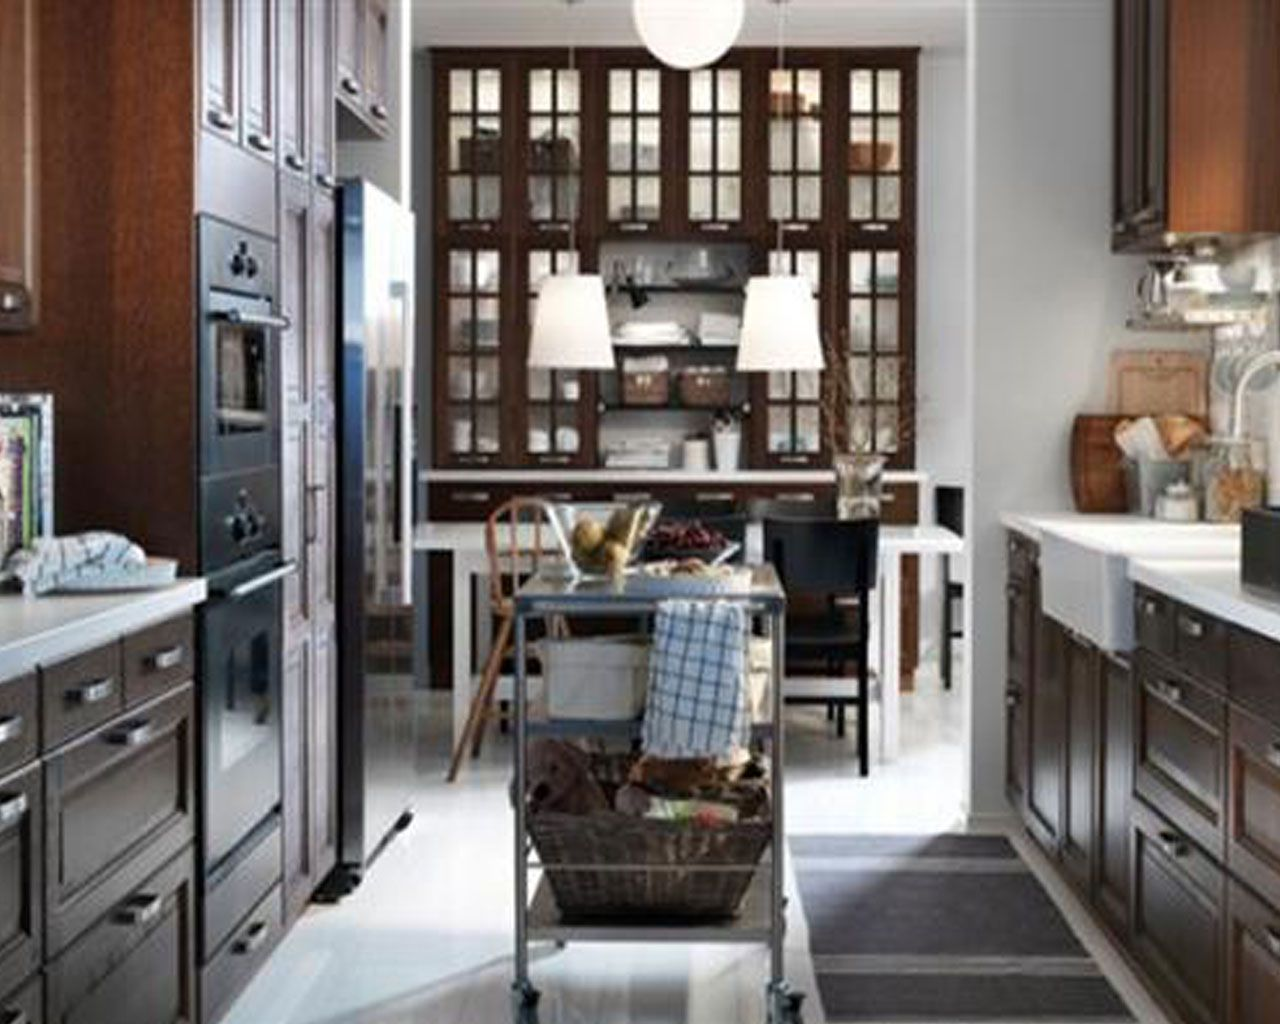 Spacious retroal kitchen and dining room design ideas by ikea ikea